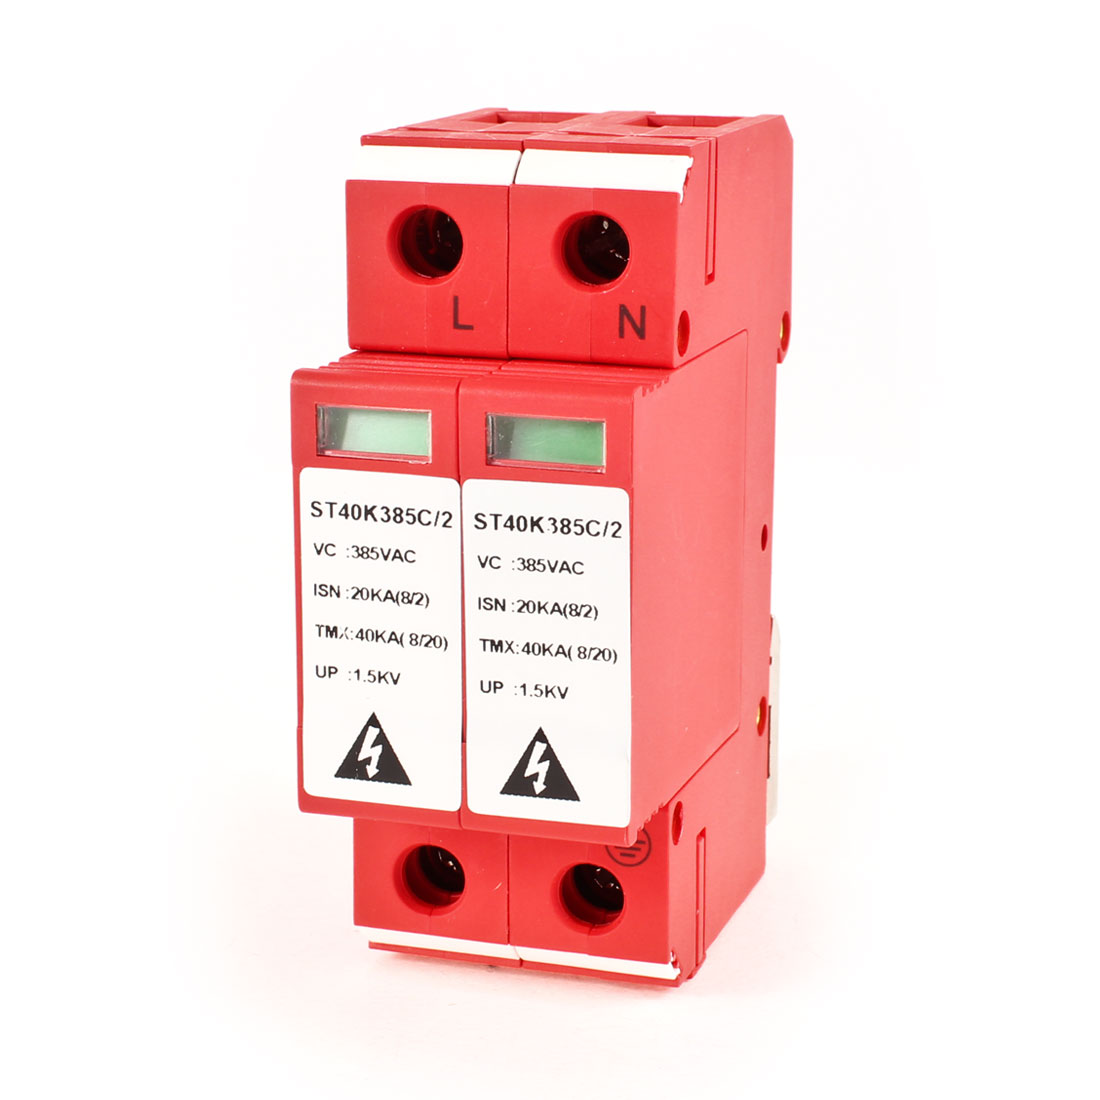 AC 385V 2P Din Rail Power Surge Protection Lightning Arrester Red